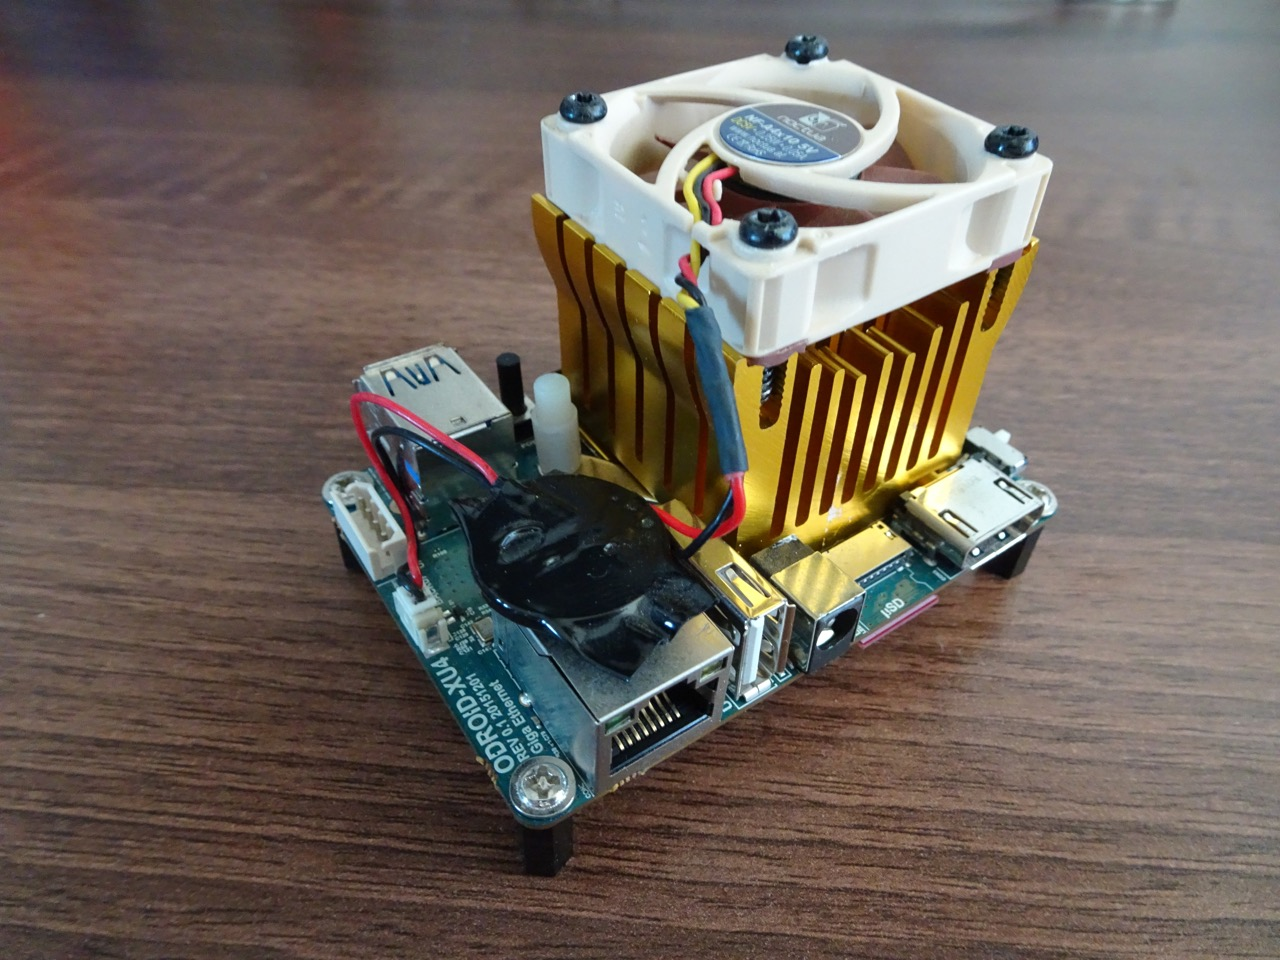 Another Odroid XU4 standard heatsink and fan replacement